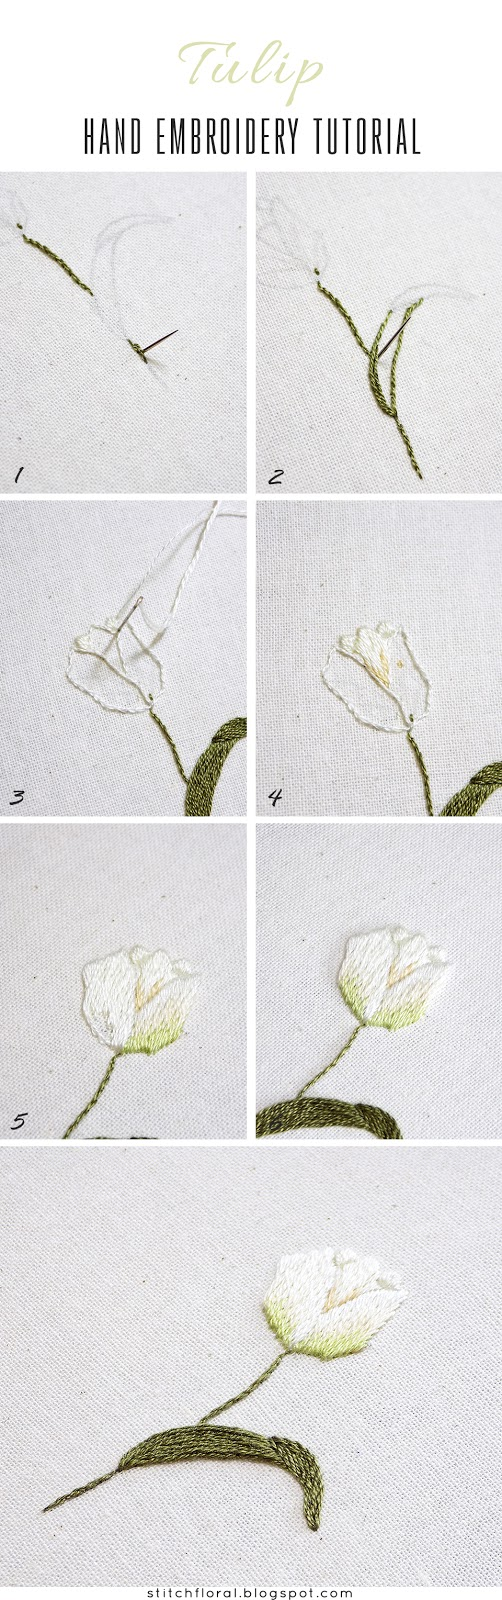 Tulip hand embroidery tutorial